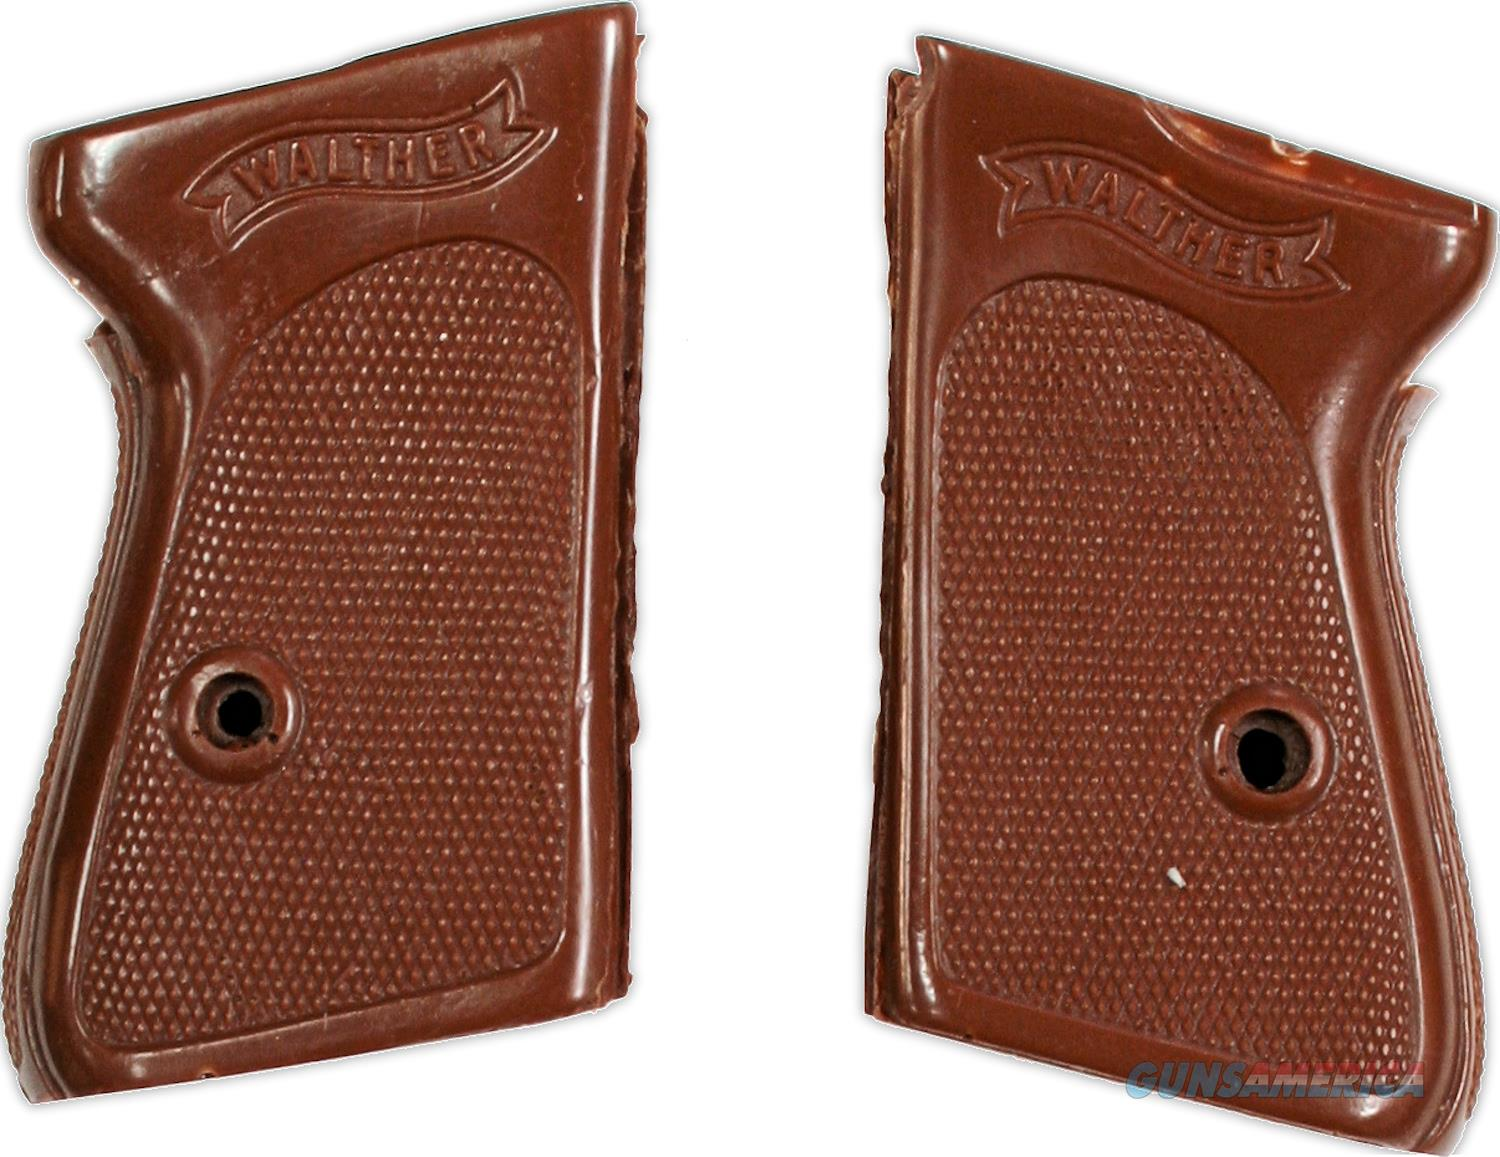 Walther PPK Wrap Around Grips,  380 &  32, Brown